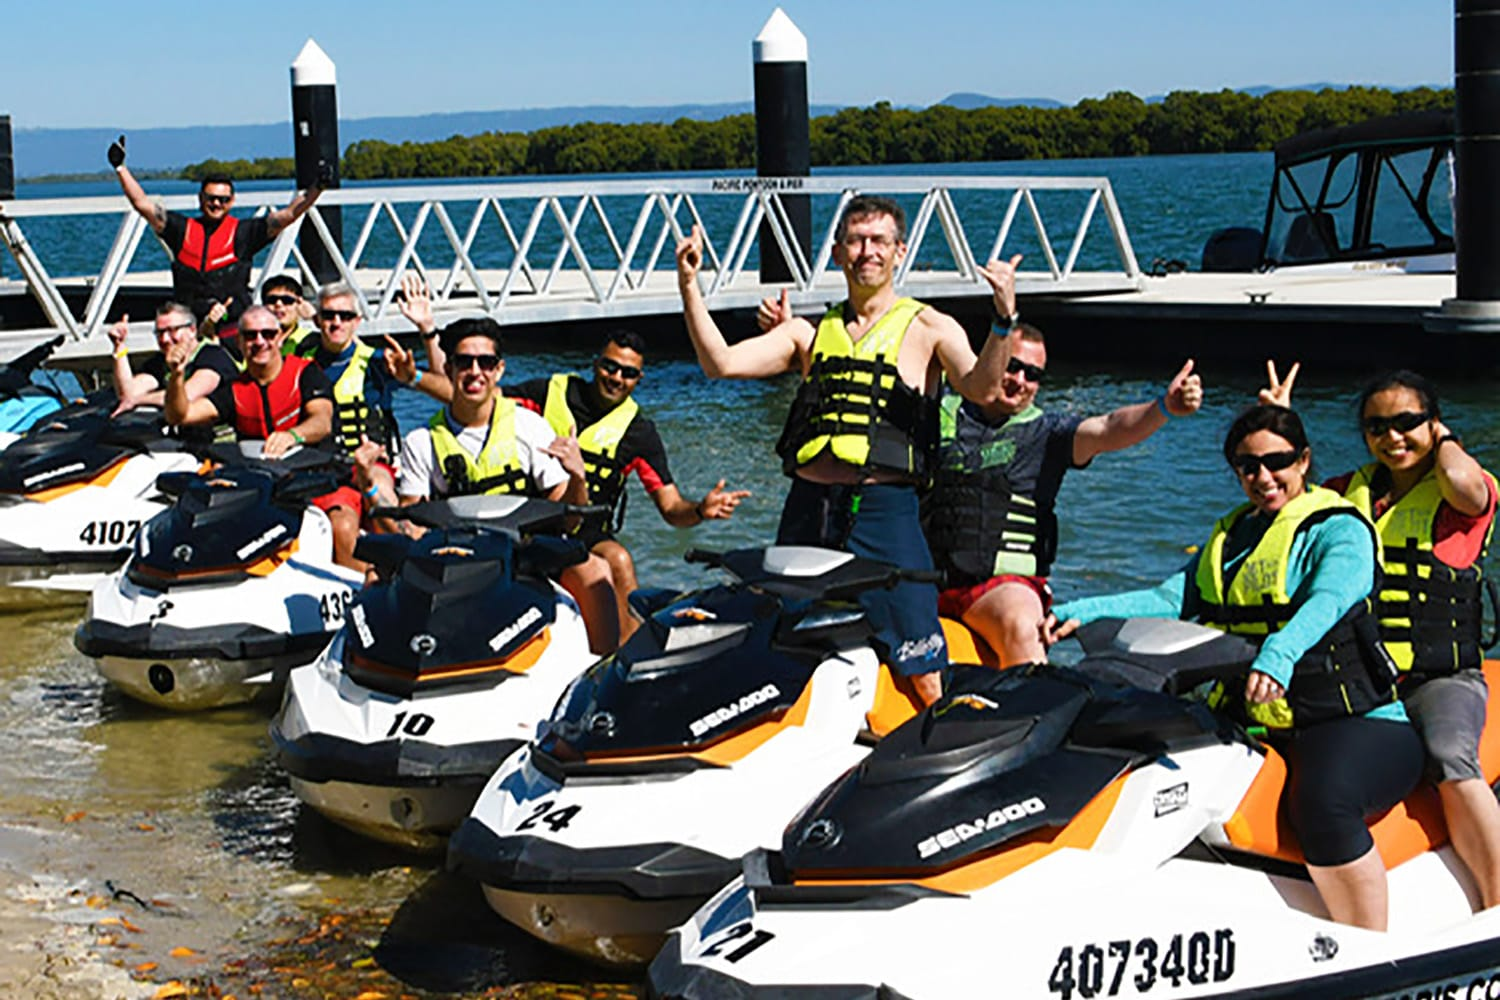 Jetski Tours on the Hawkesbury River 1.5 hours (Seats 2 People)